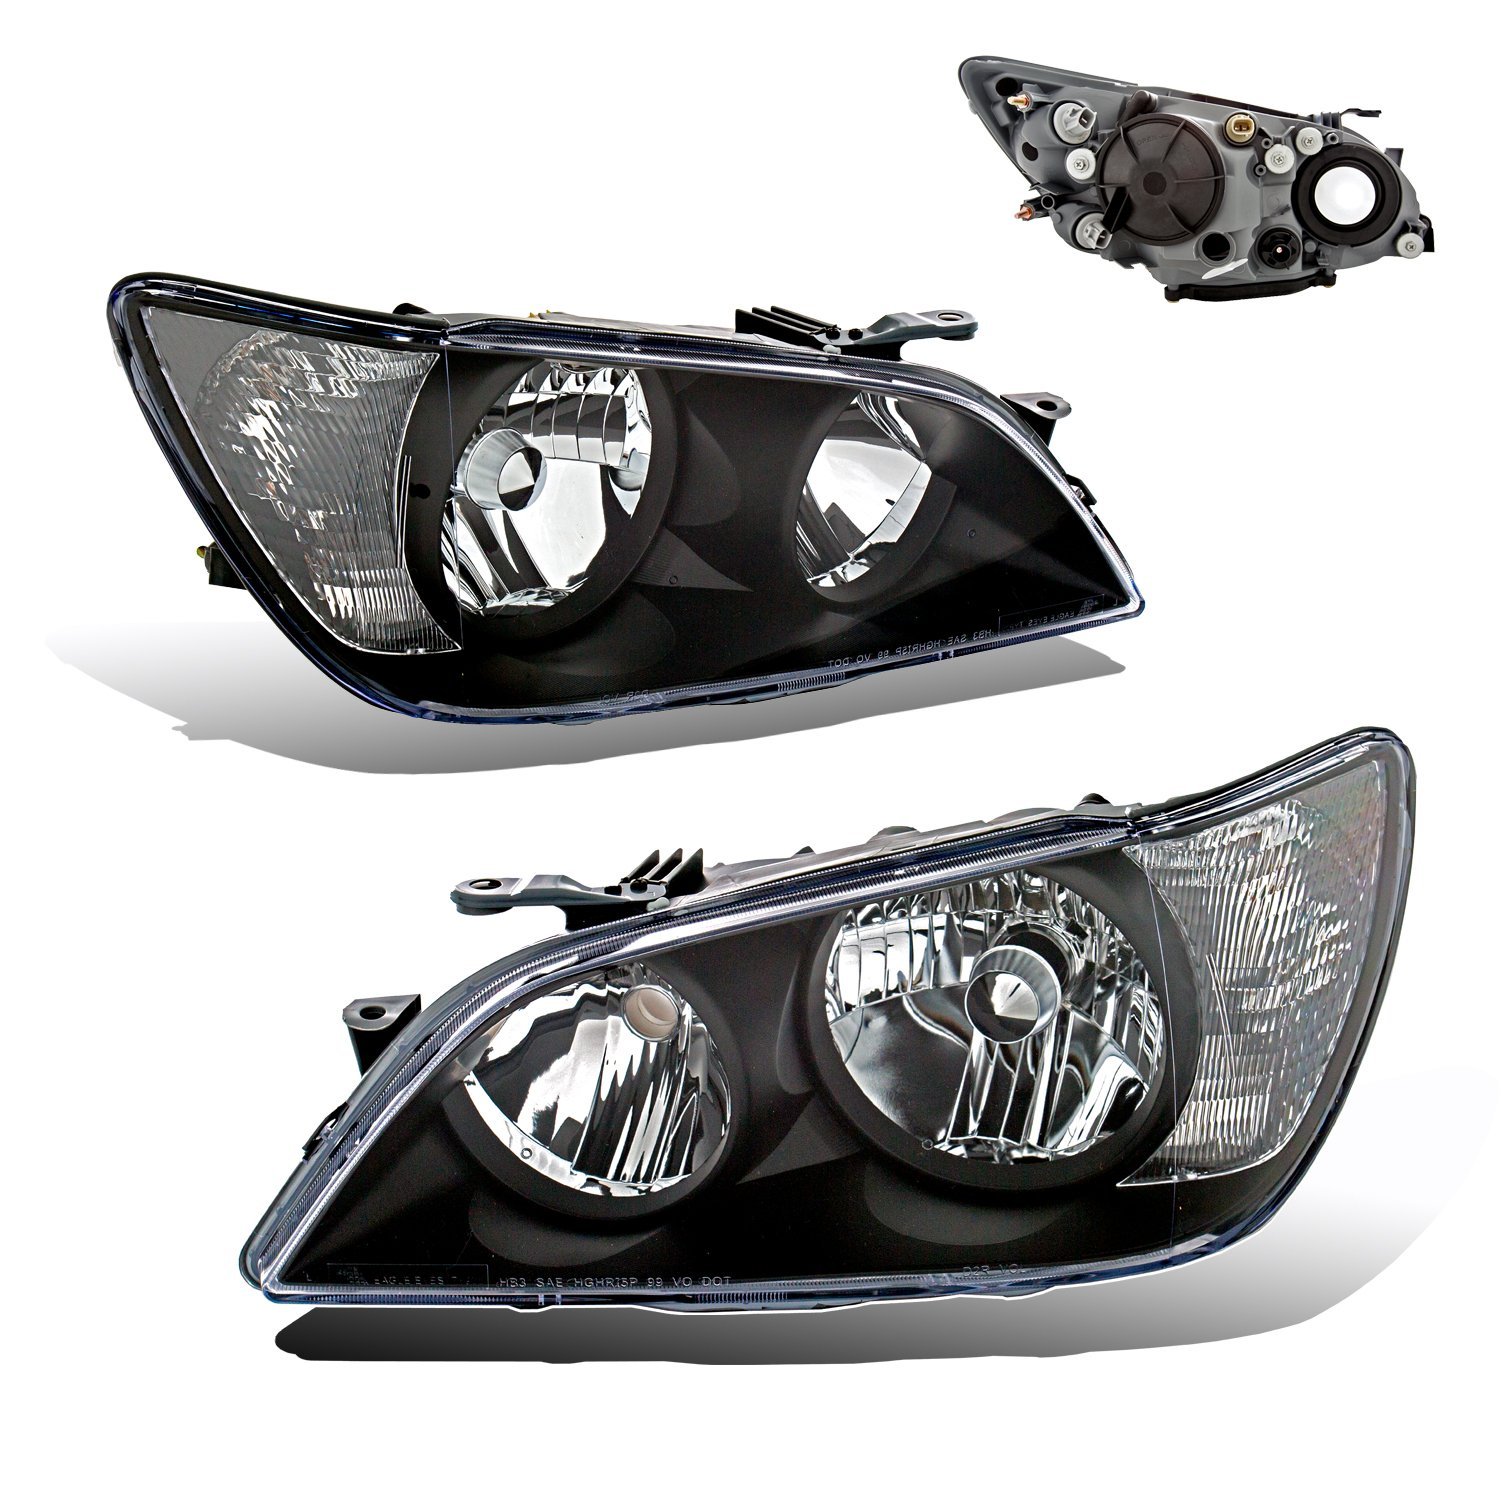 Amazon.com: SPPC Projector Headlights Black Assembly Set For Lexus IS 300 -  (Pair) Driver Left and Passenger Right Side Replacement Headlamp: Automotive